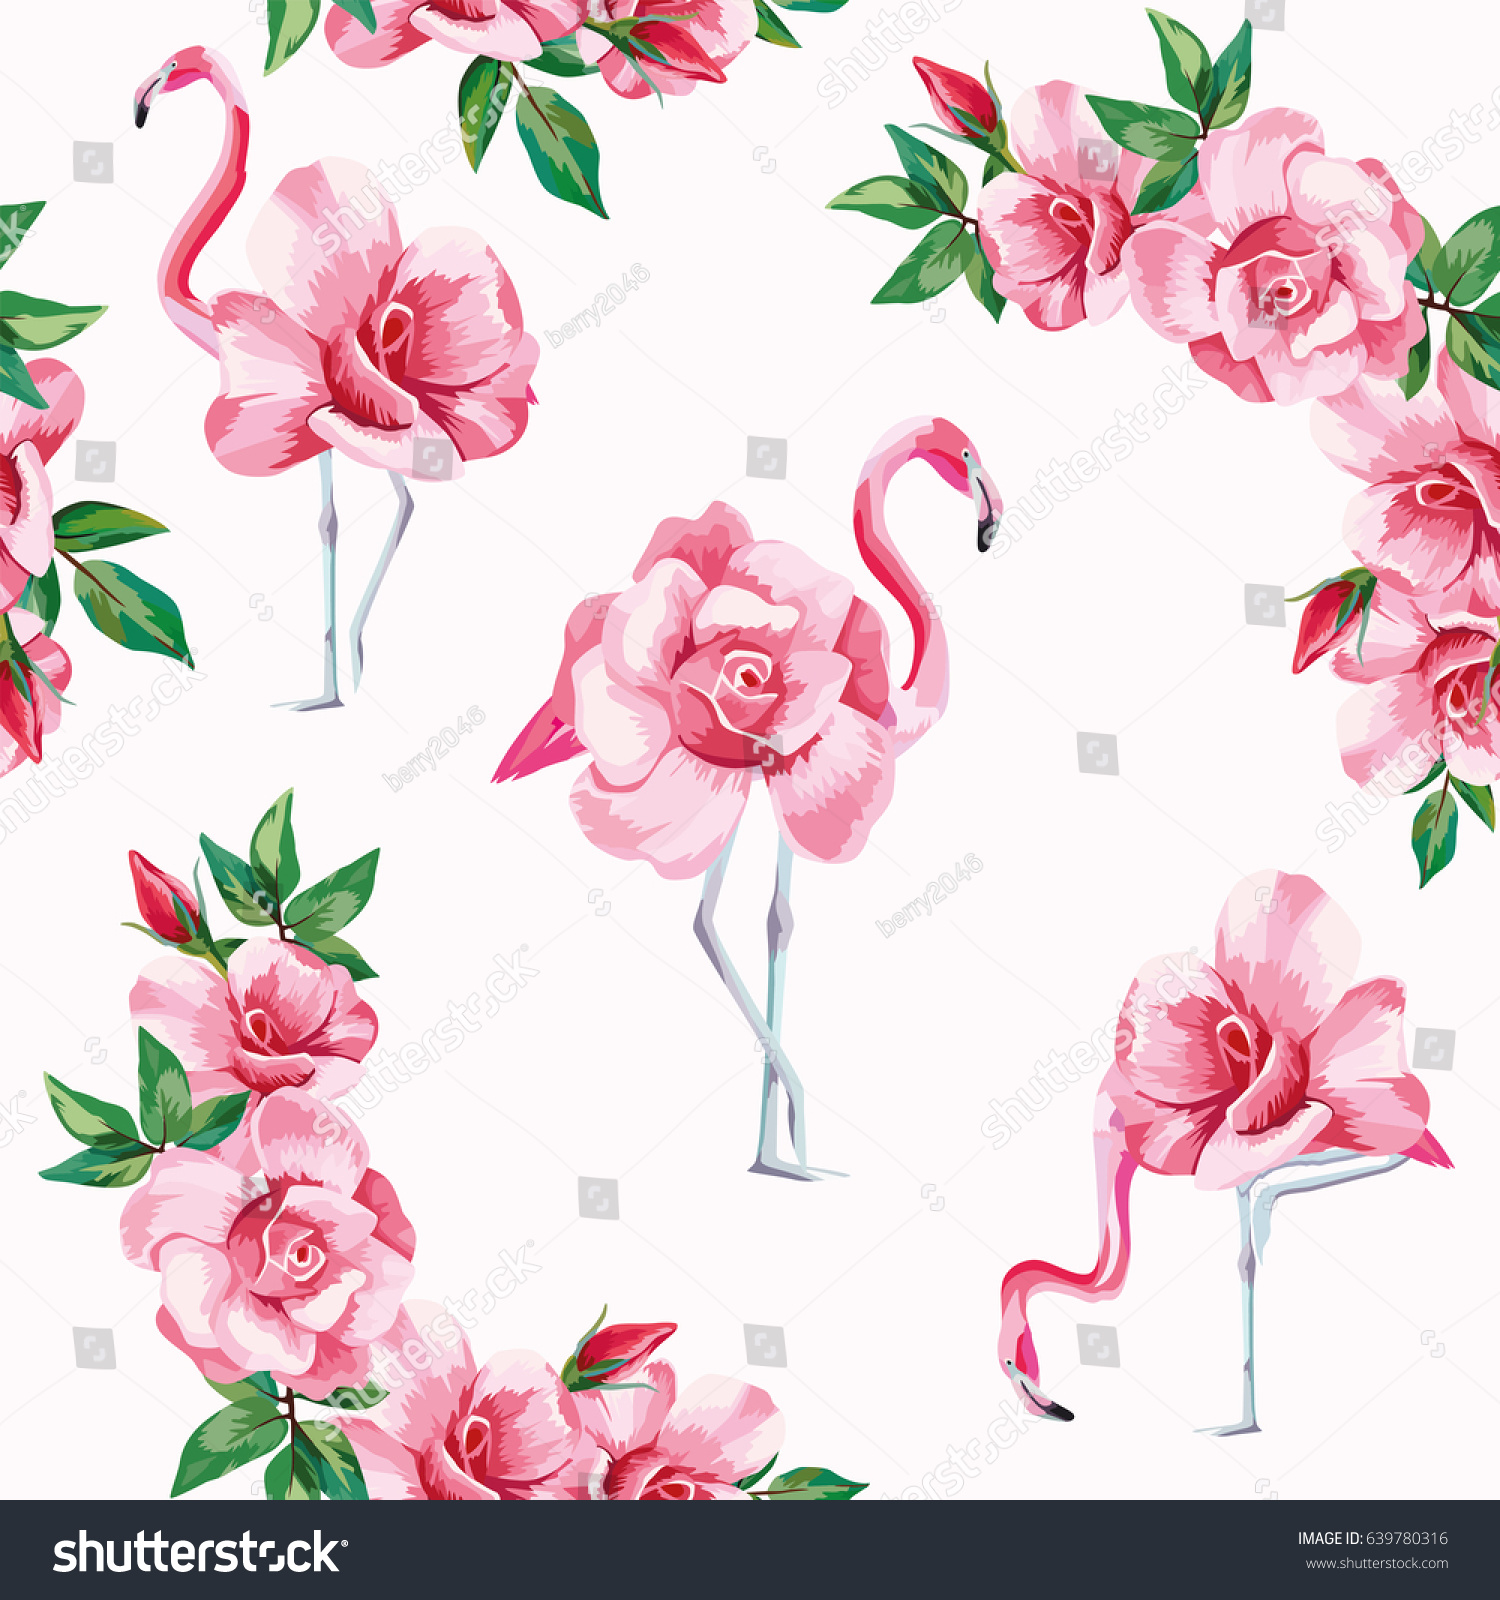 Beach image of a wallpaper with a beautiful tropic pink flamingo and rose  flowers Seamless